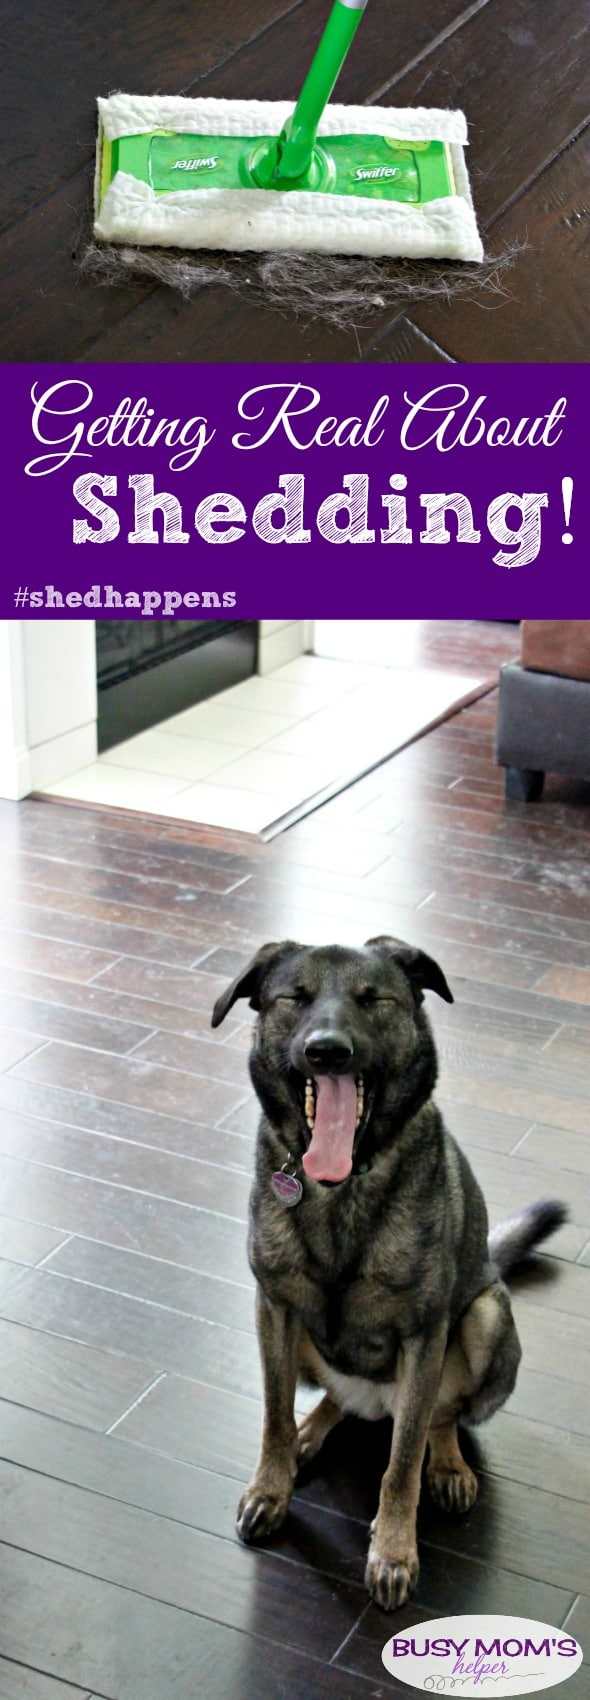 Getting Real About Shedding because #shedhappens #ad #swifferfanatic #pets #cleaning #pethair #dogs #puppies #animals